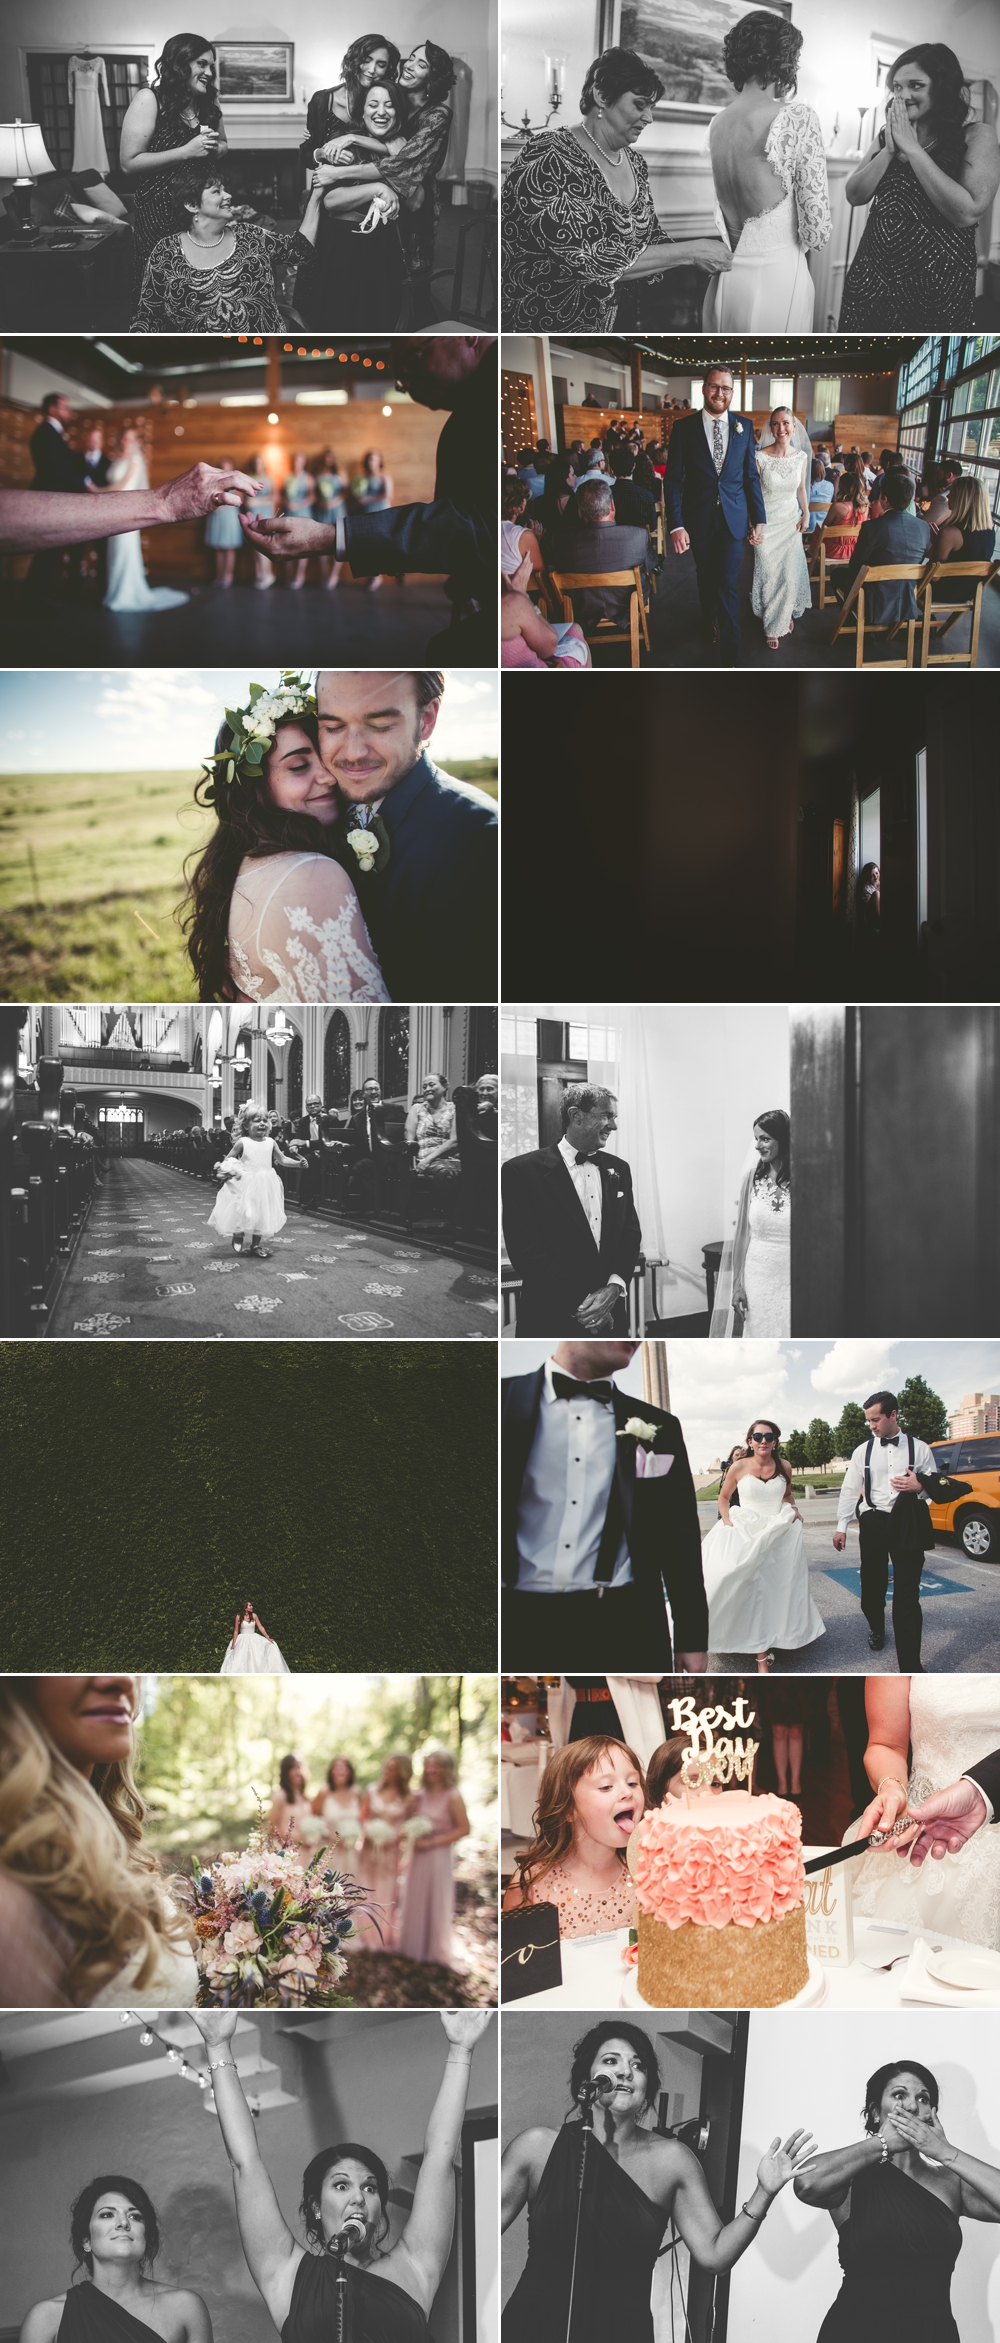 jason_domingues_photography_best_kansas_city_photography_kc_wedding_weddings0001.jpg